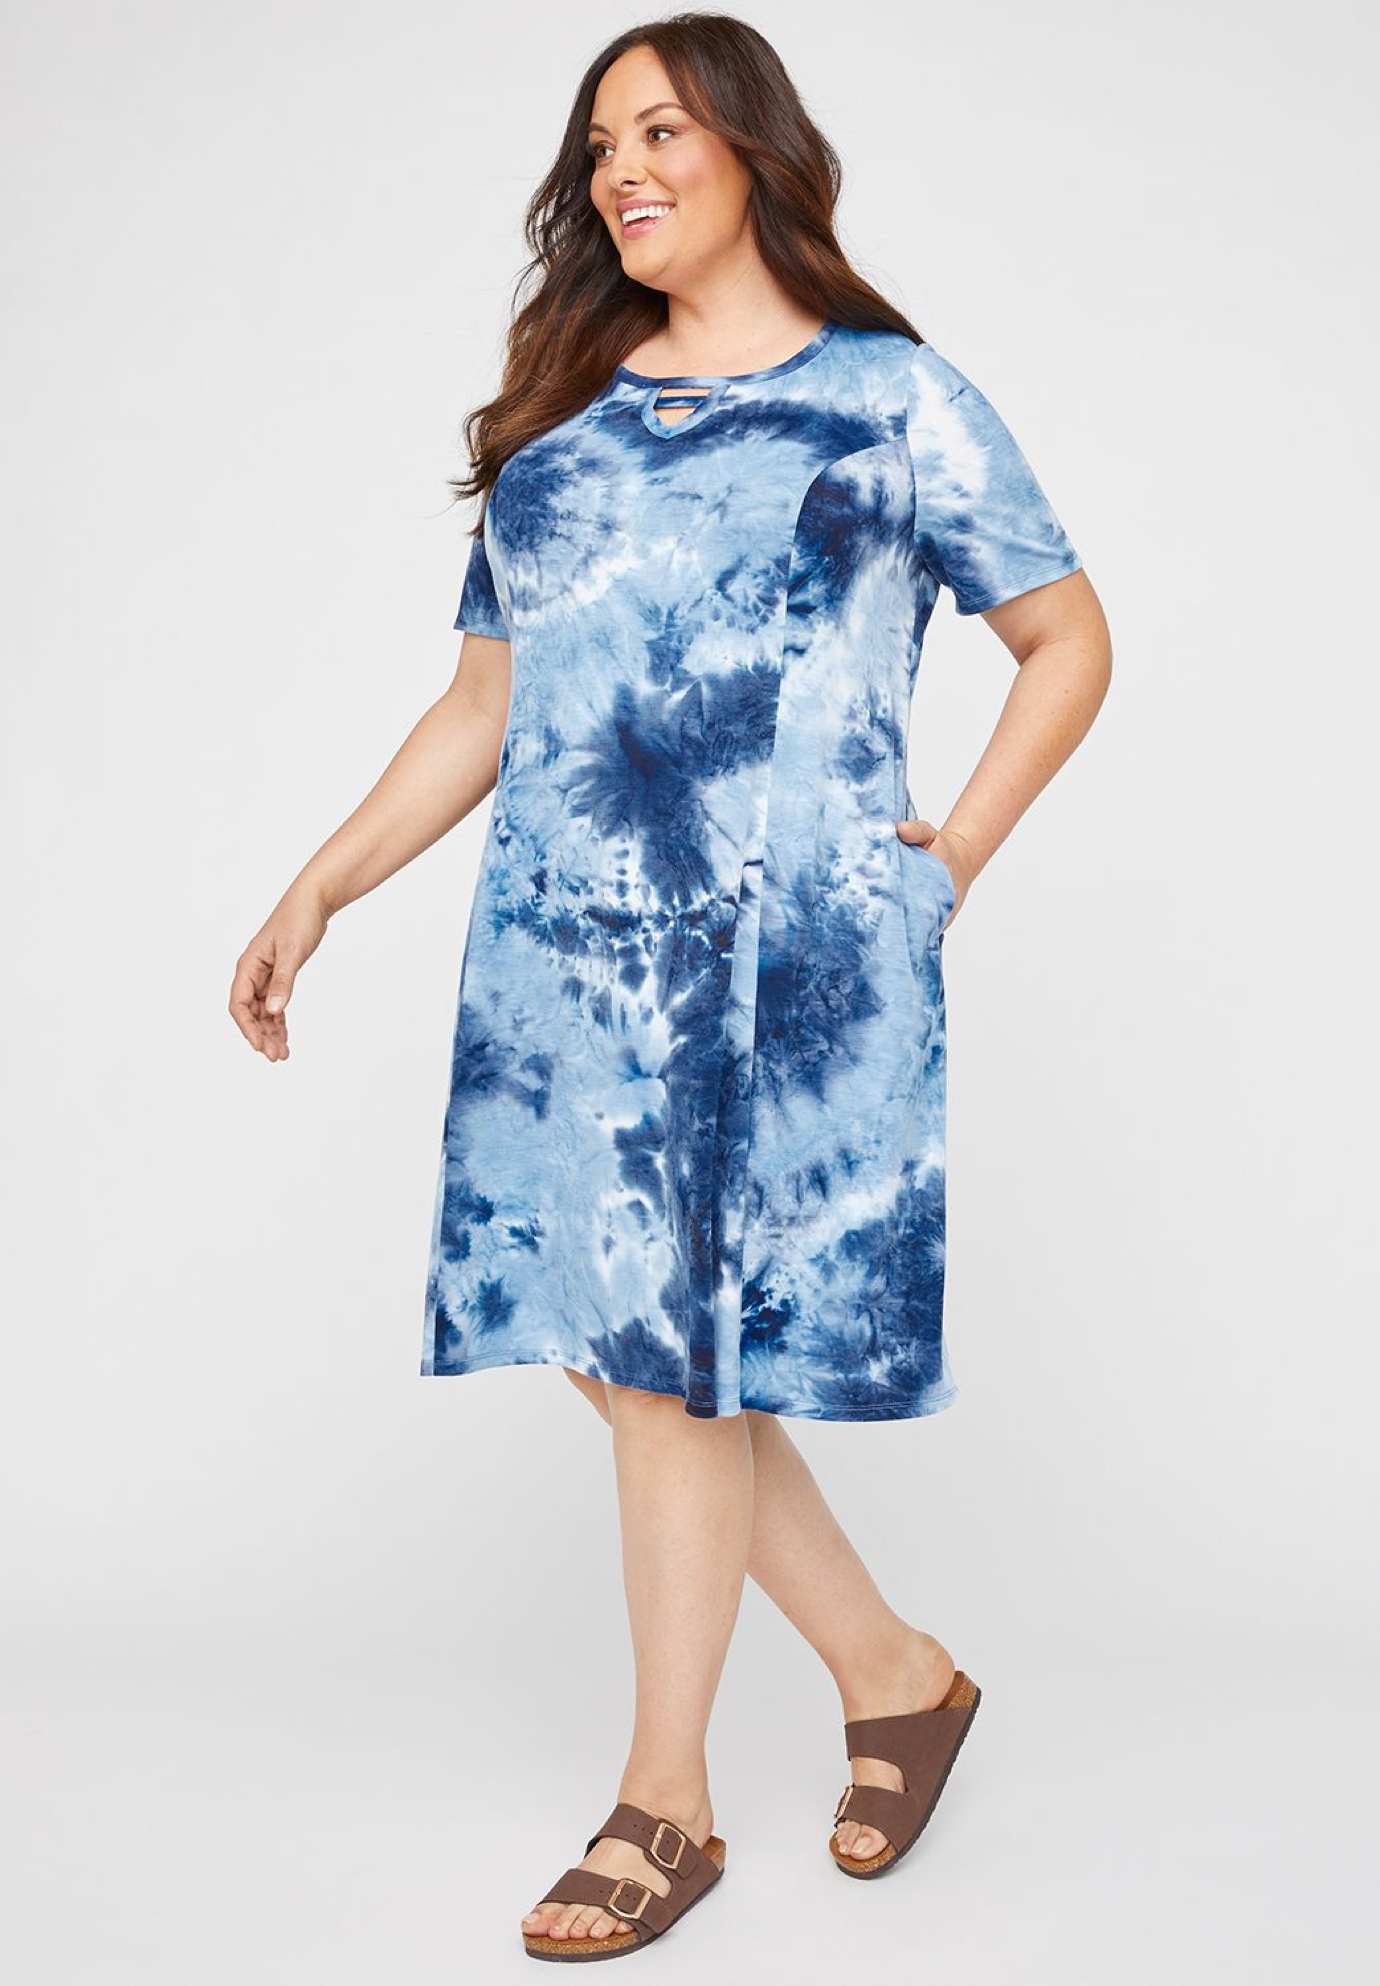 Lakeside Tie-Dye A-Line Dress (With Pockets),